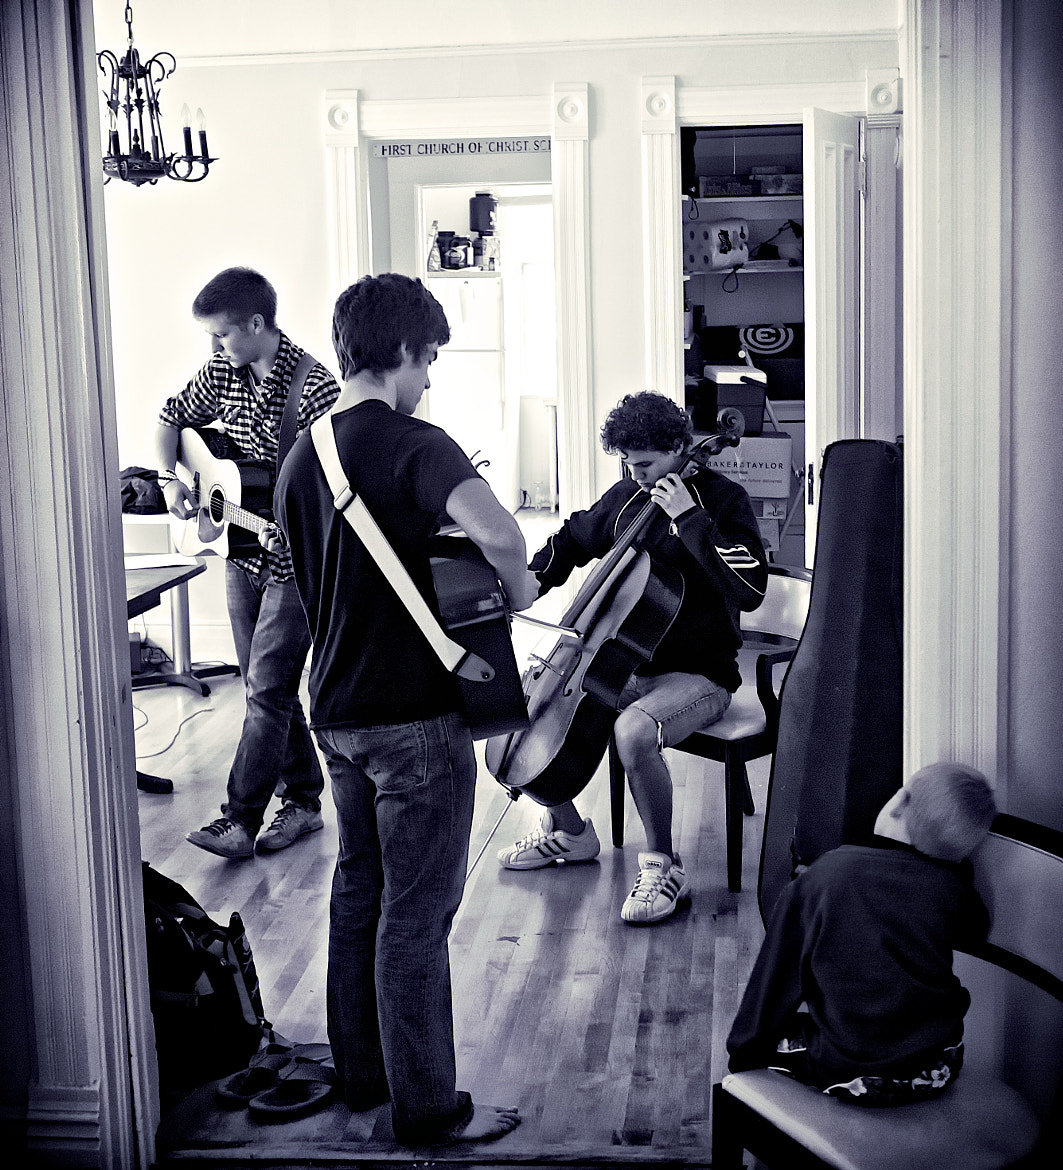 Photograph Jam session by Tobias Lohse on 500px